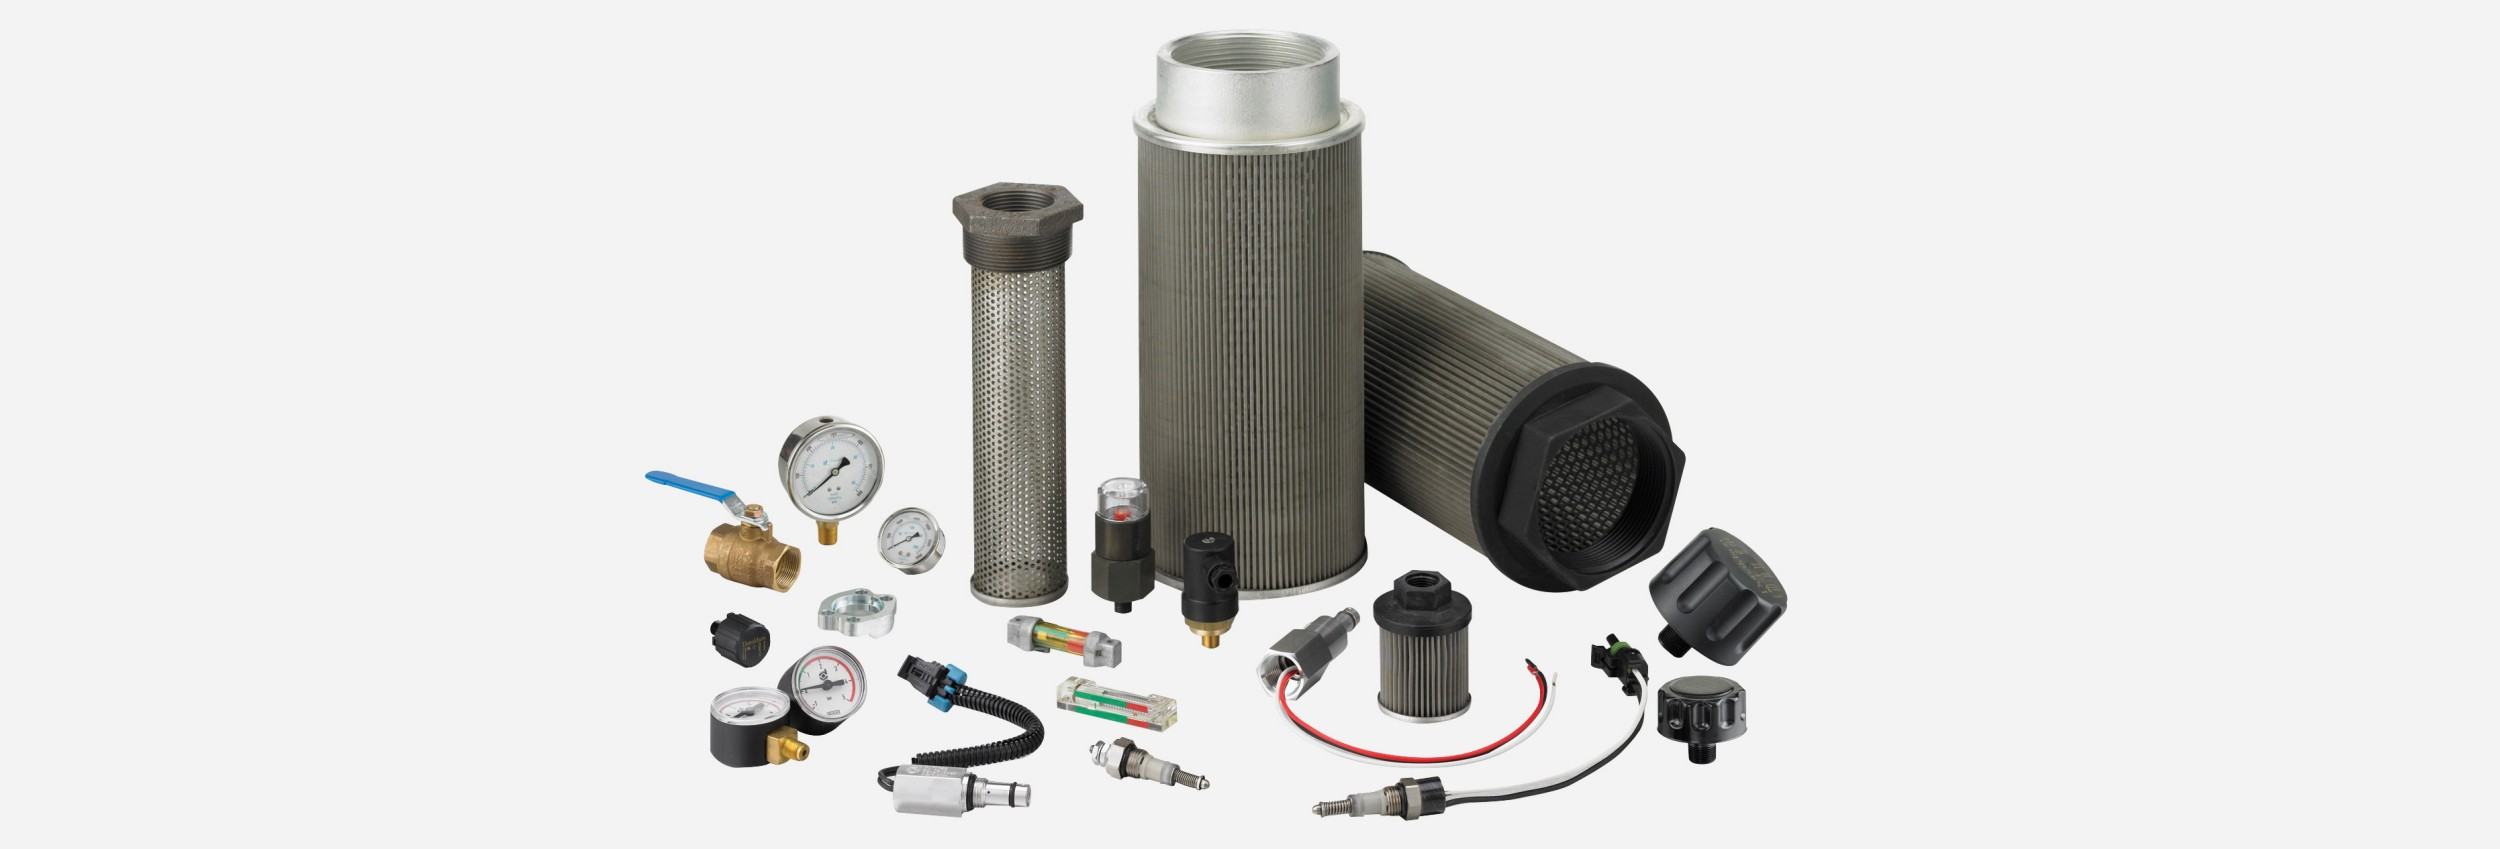 FIK Group with In-Tank Assemblies and Replacement Filters